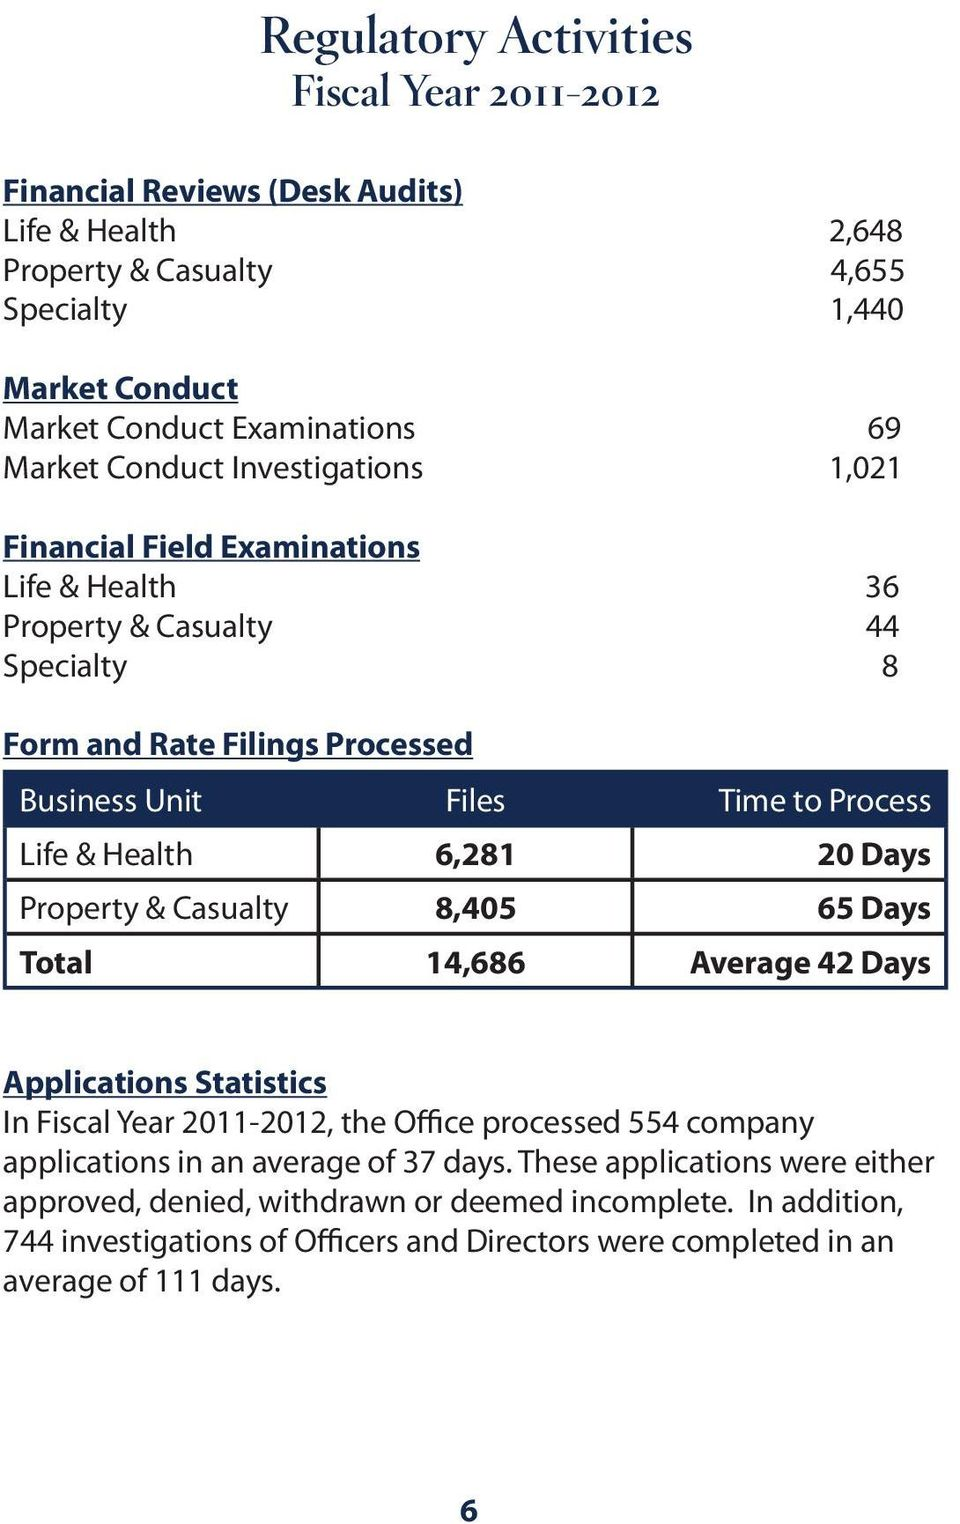 Health 6,281 20 Days Property & Casualty 8,405 65 Days Total 14,686 Average 42 Days Applications Statistics In Fiscal Year 2011-2012, the Office processed 554 company applications in an